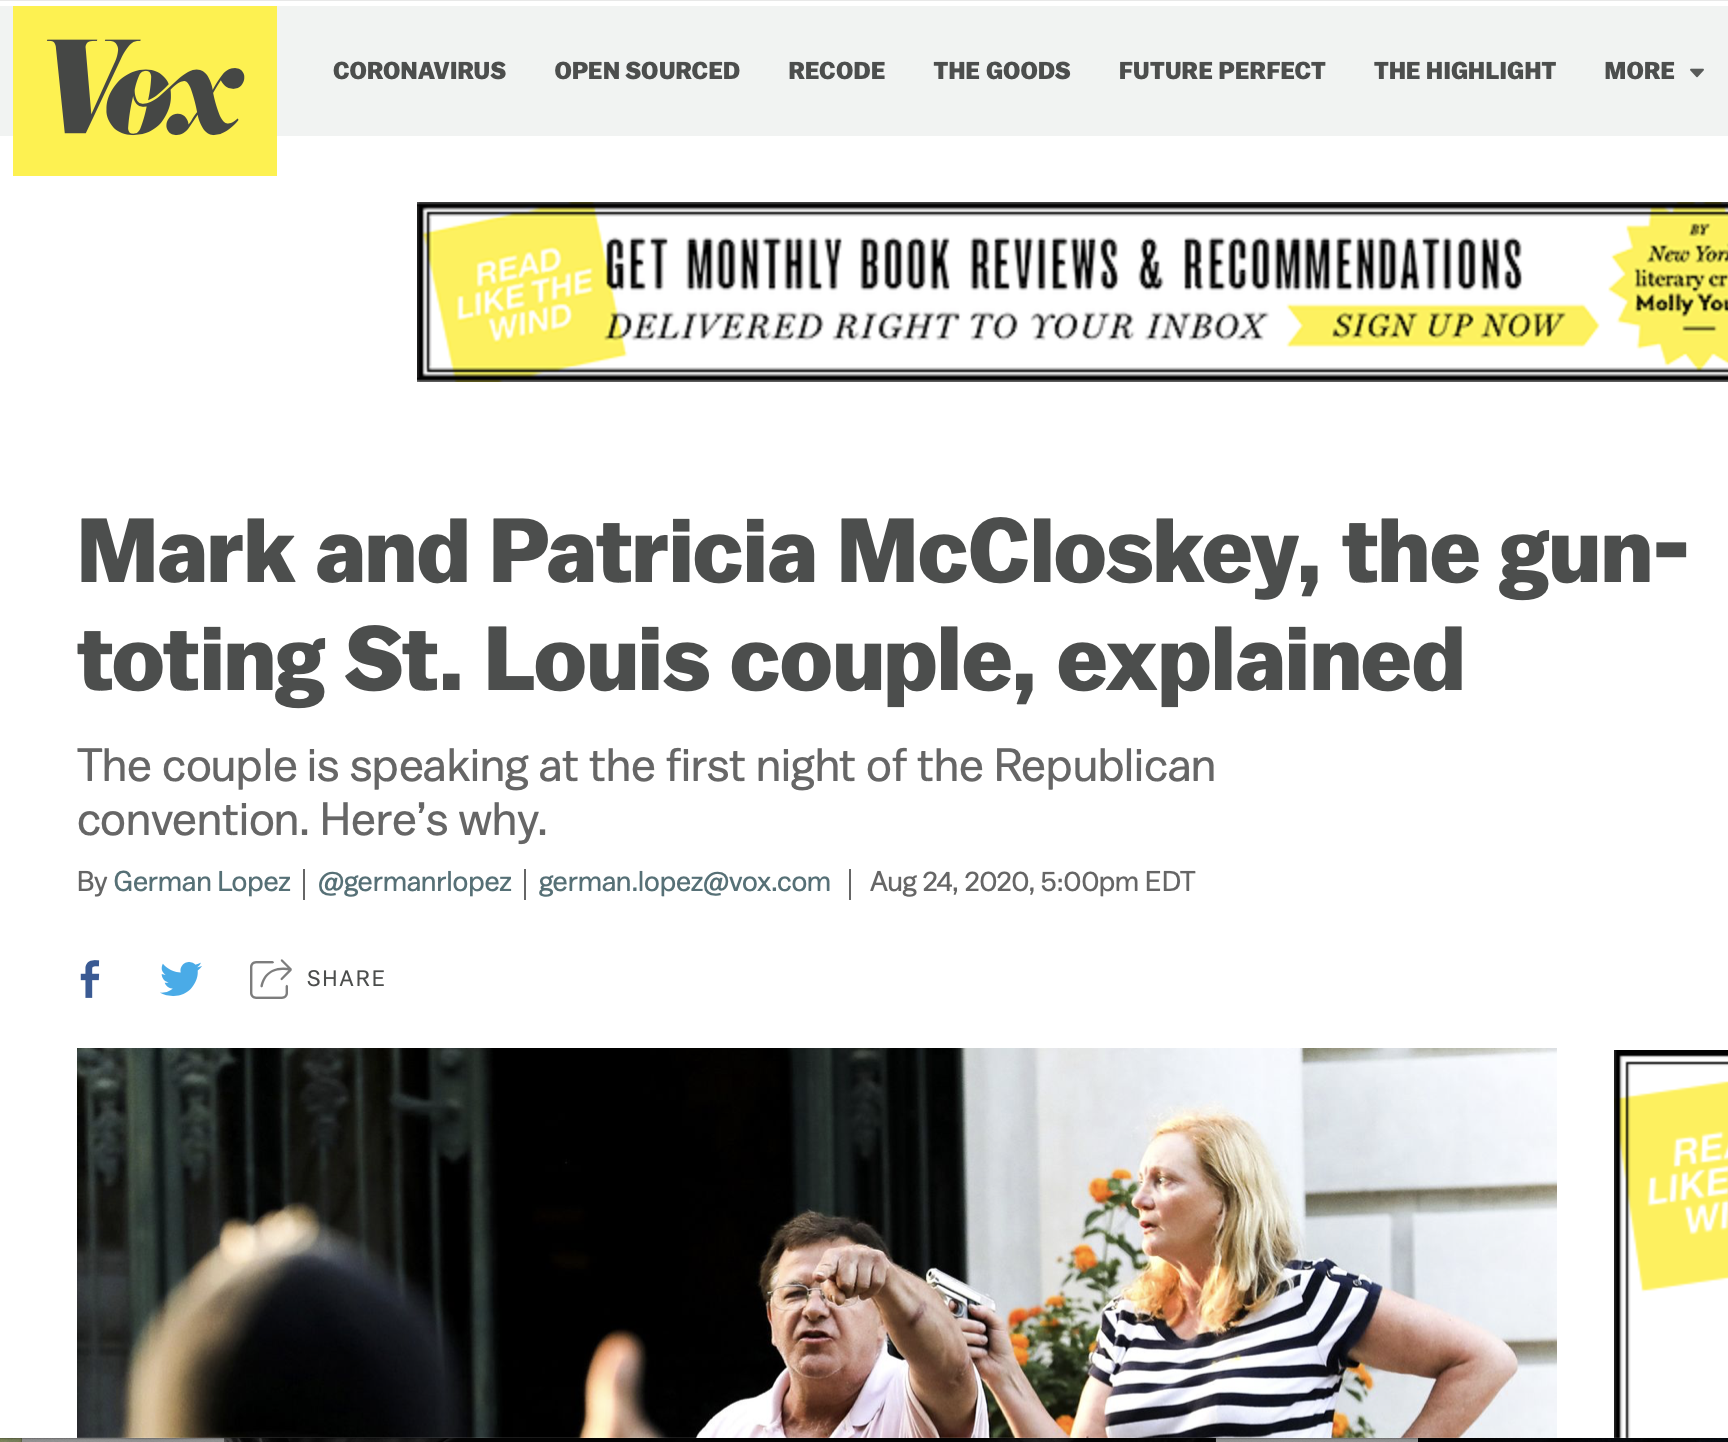 Mark and Patricia McCloskey, the gun-toting St. Louis couple, explained